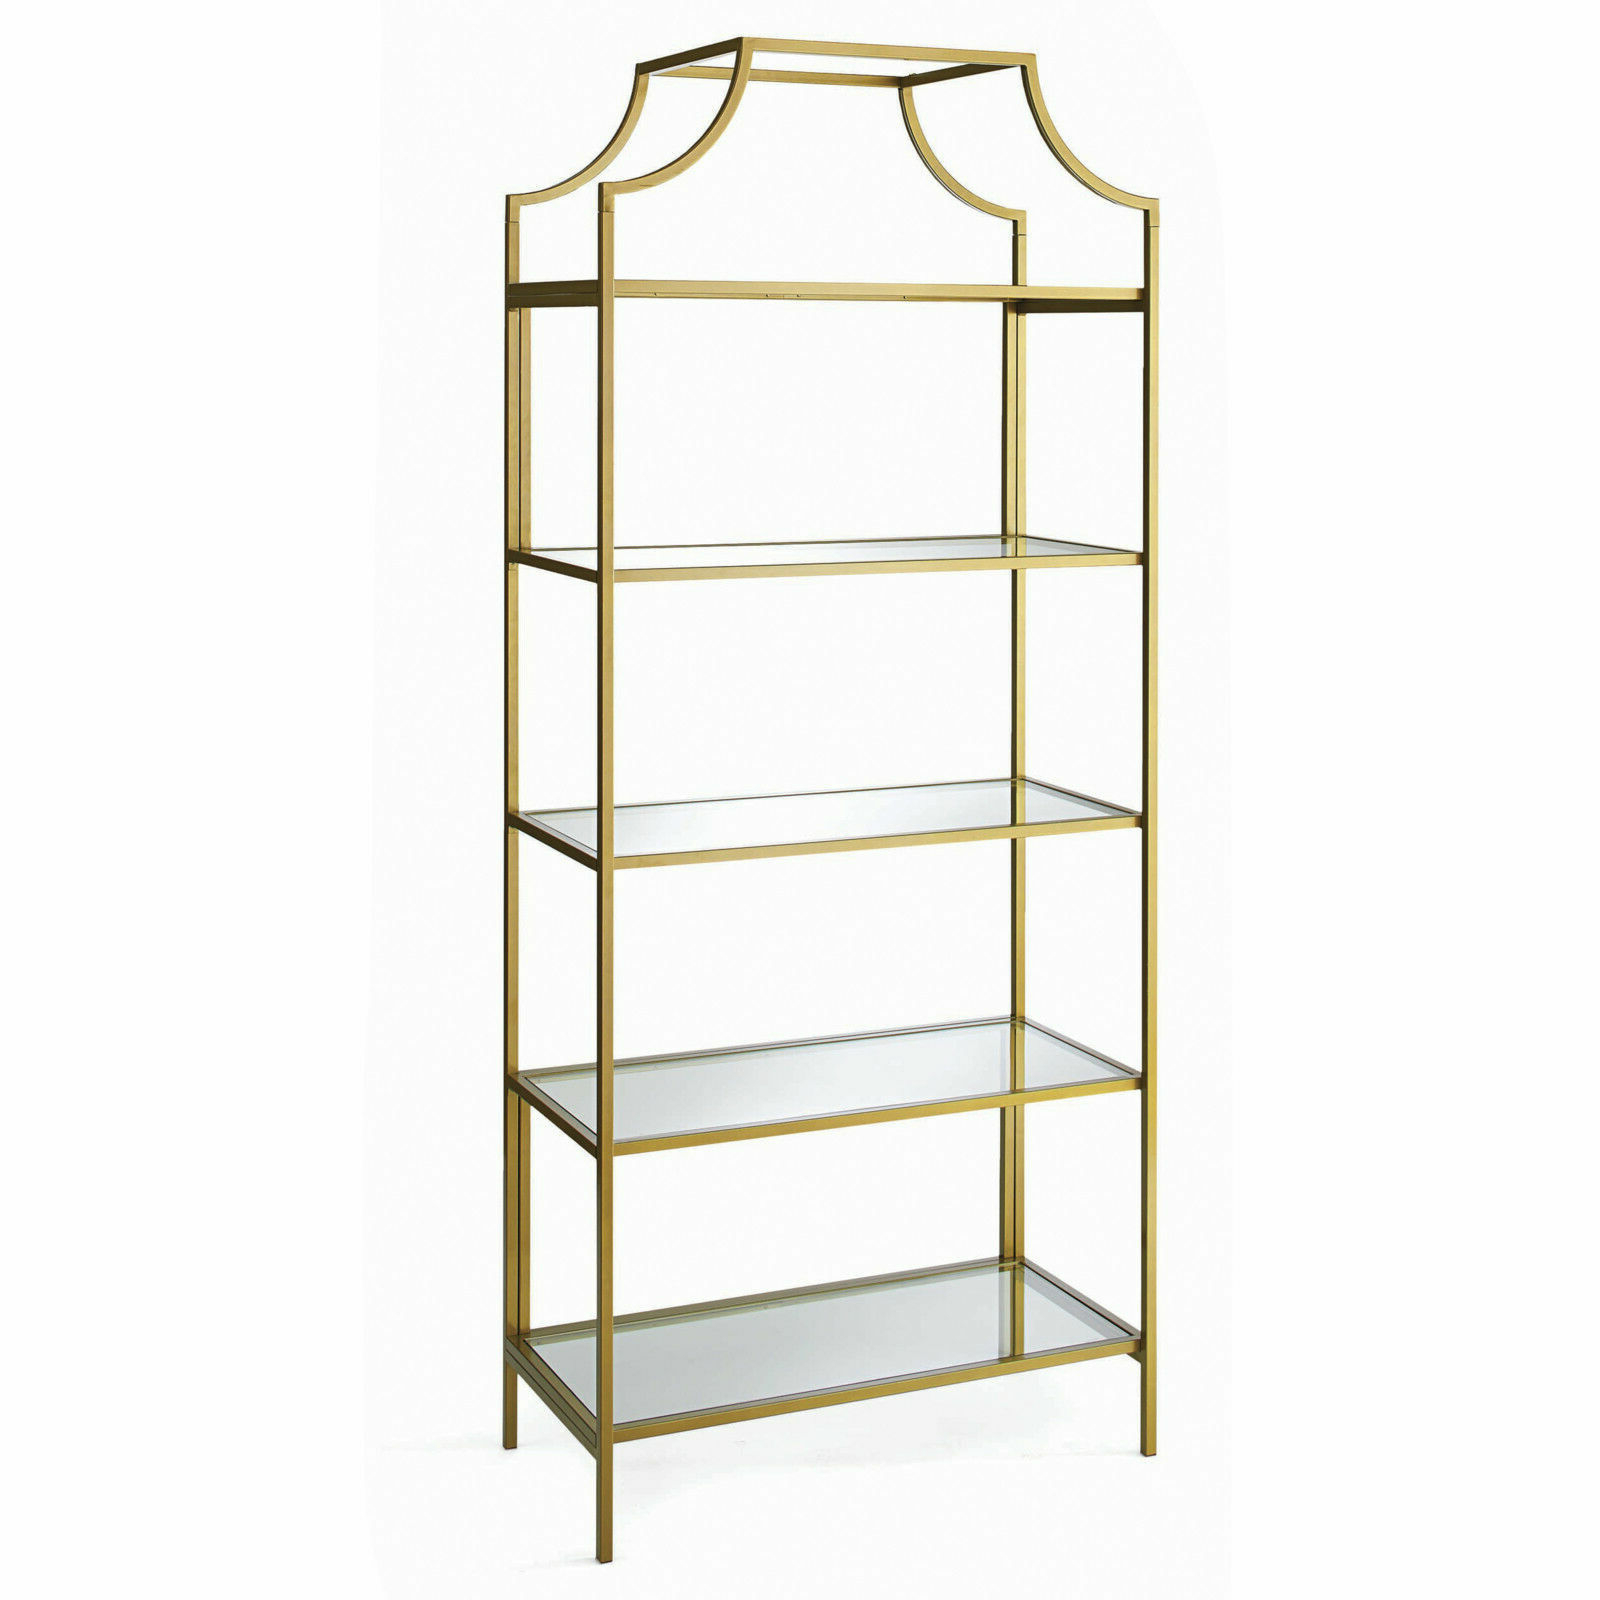 """New Better Homes & Gardens 71"""" Nola 5 Tier Etagere Bookcase Gold Finish 5  Shelf Intended For Most Recently Released Beckwith Etagere Bookcases (Gallery 9 of 20)"""